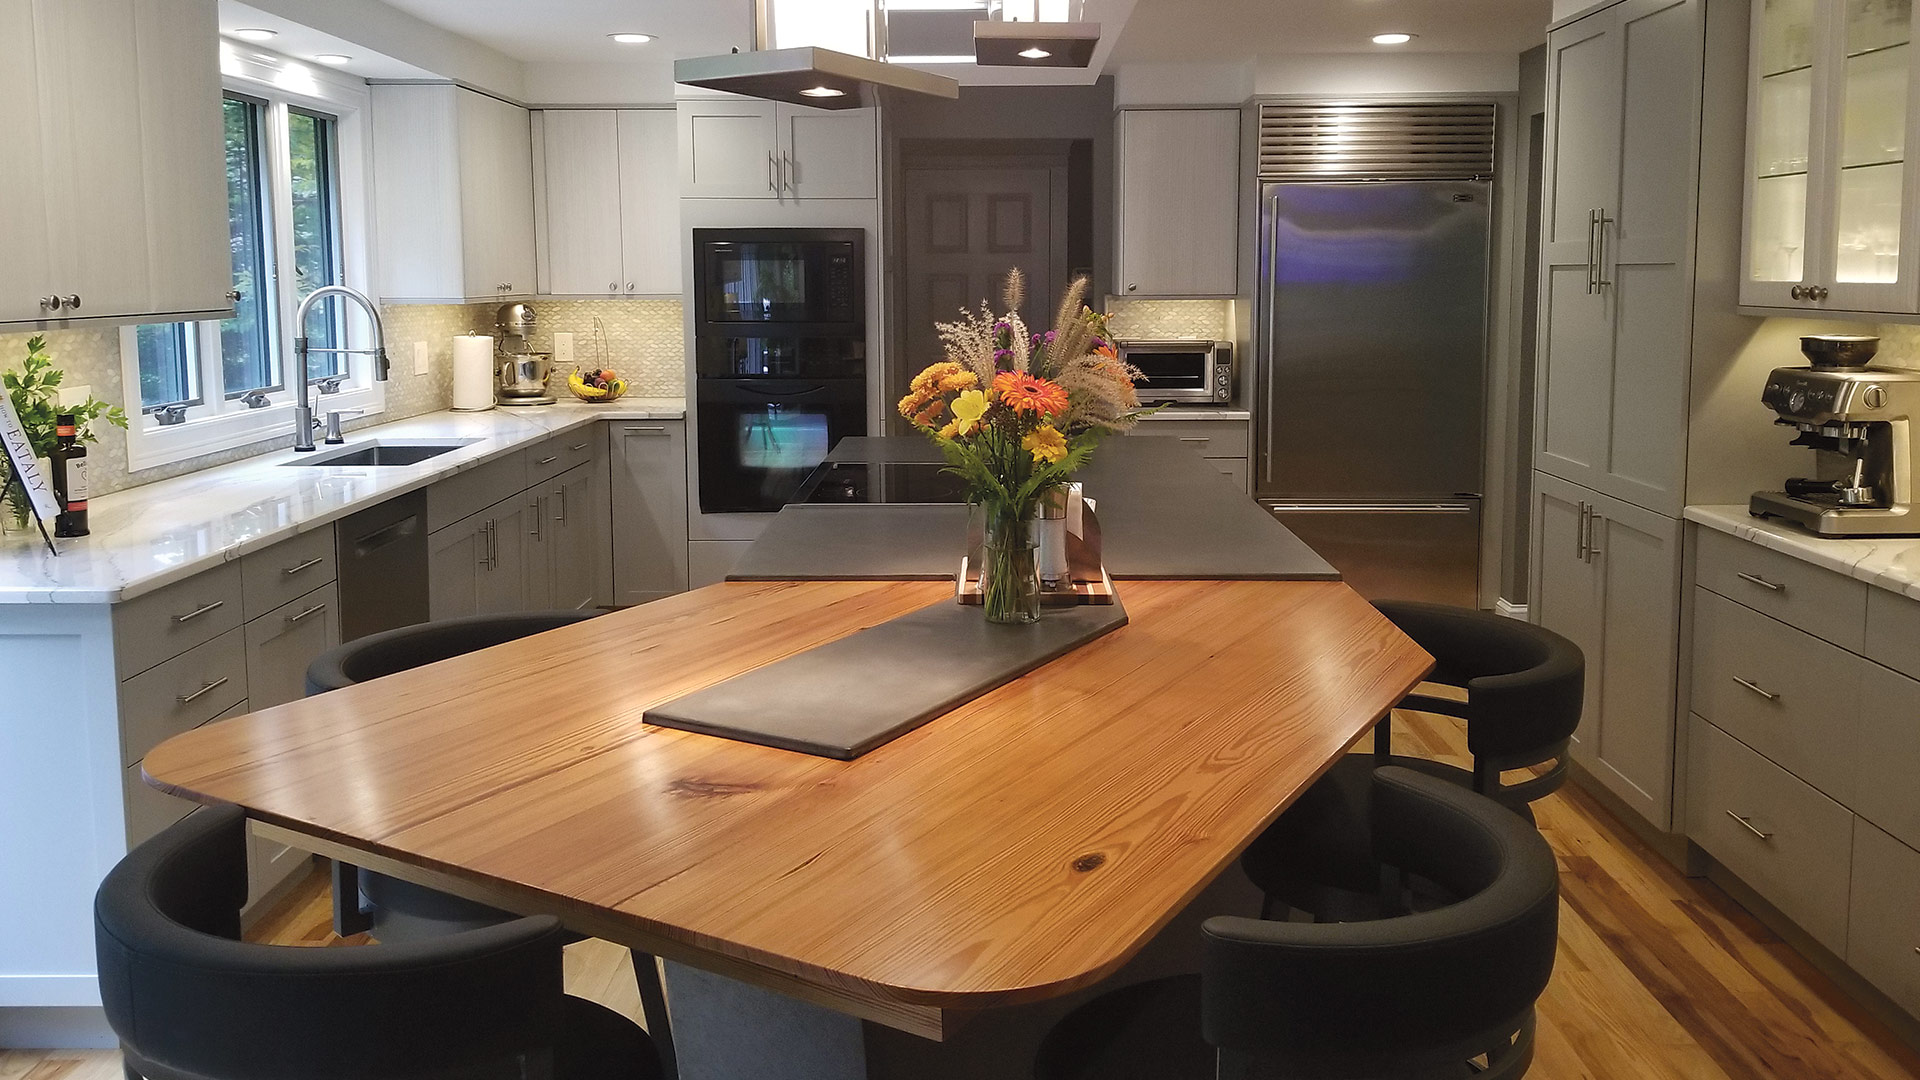 This recent remodeling project by Kitchens by Curio